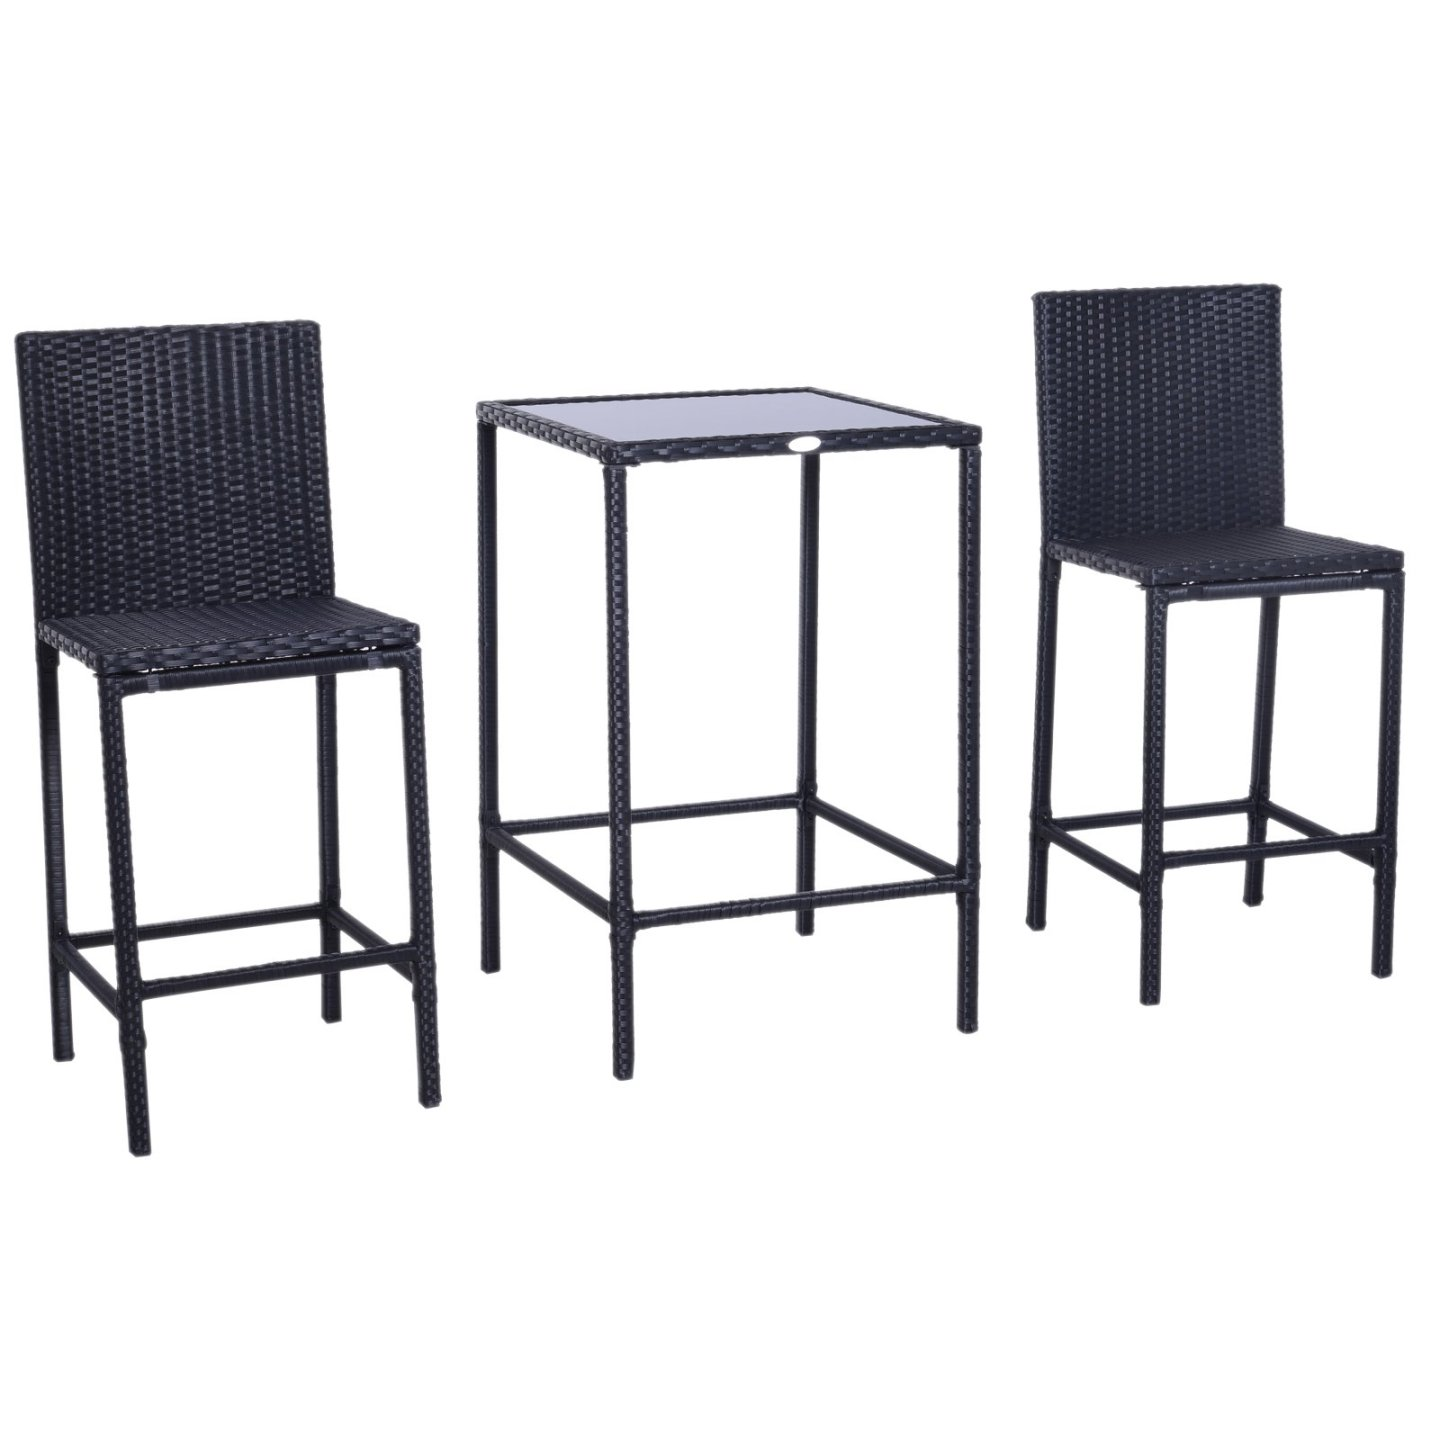 Outsunny 3pc Outdoor Rattan Wicker Patio Bistro Dining Set